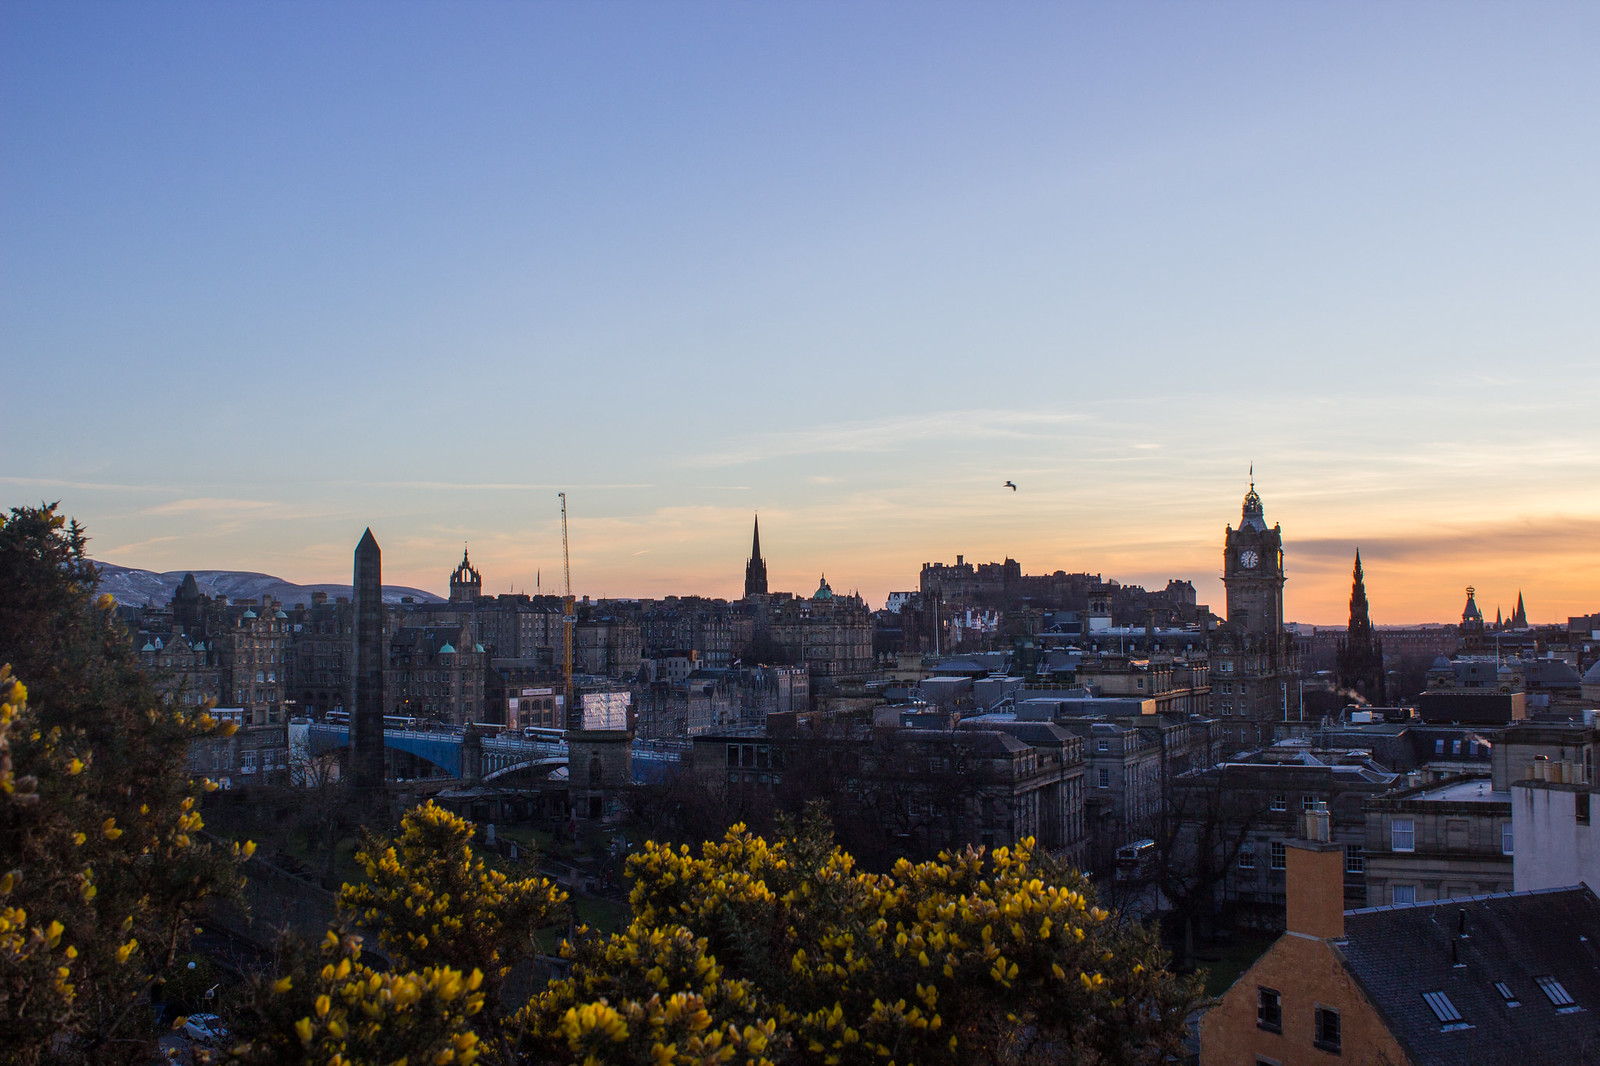 Watching the sunset over Edinburgh from Calton Hill